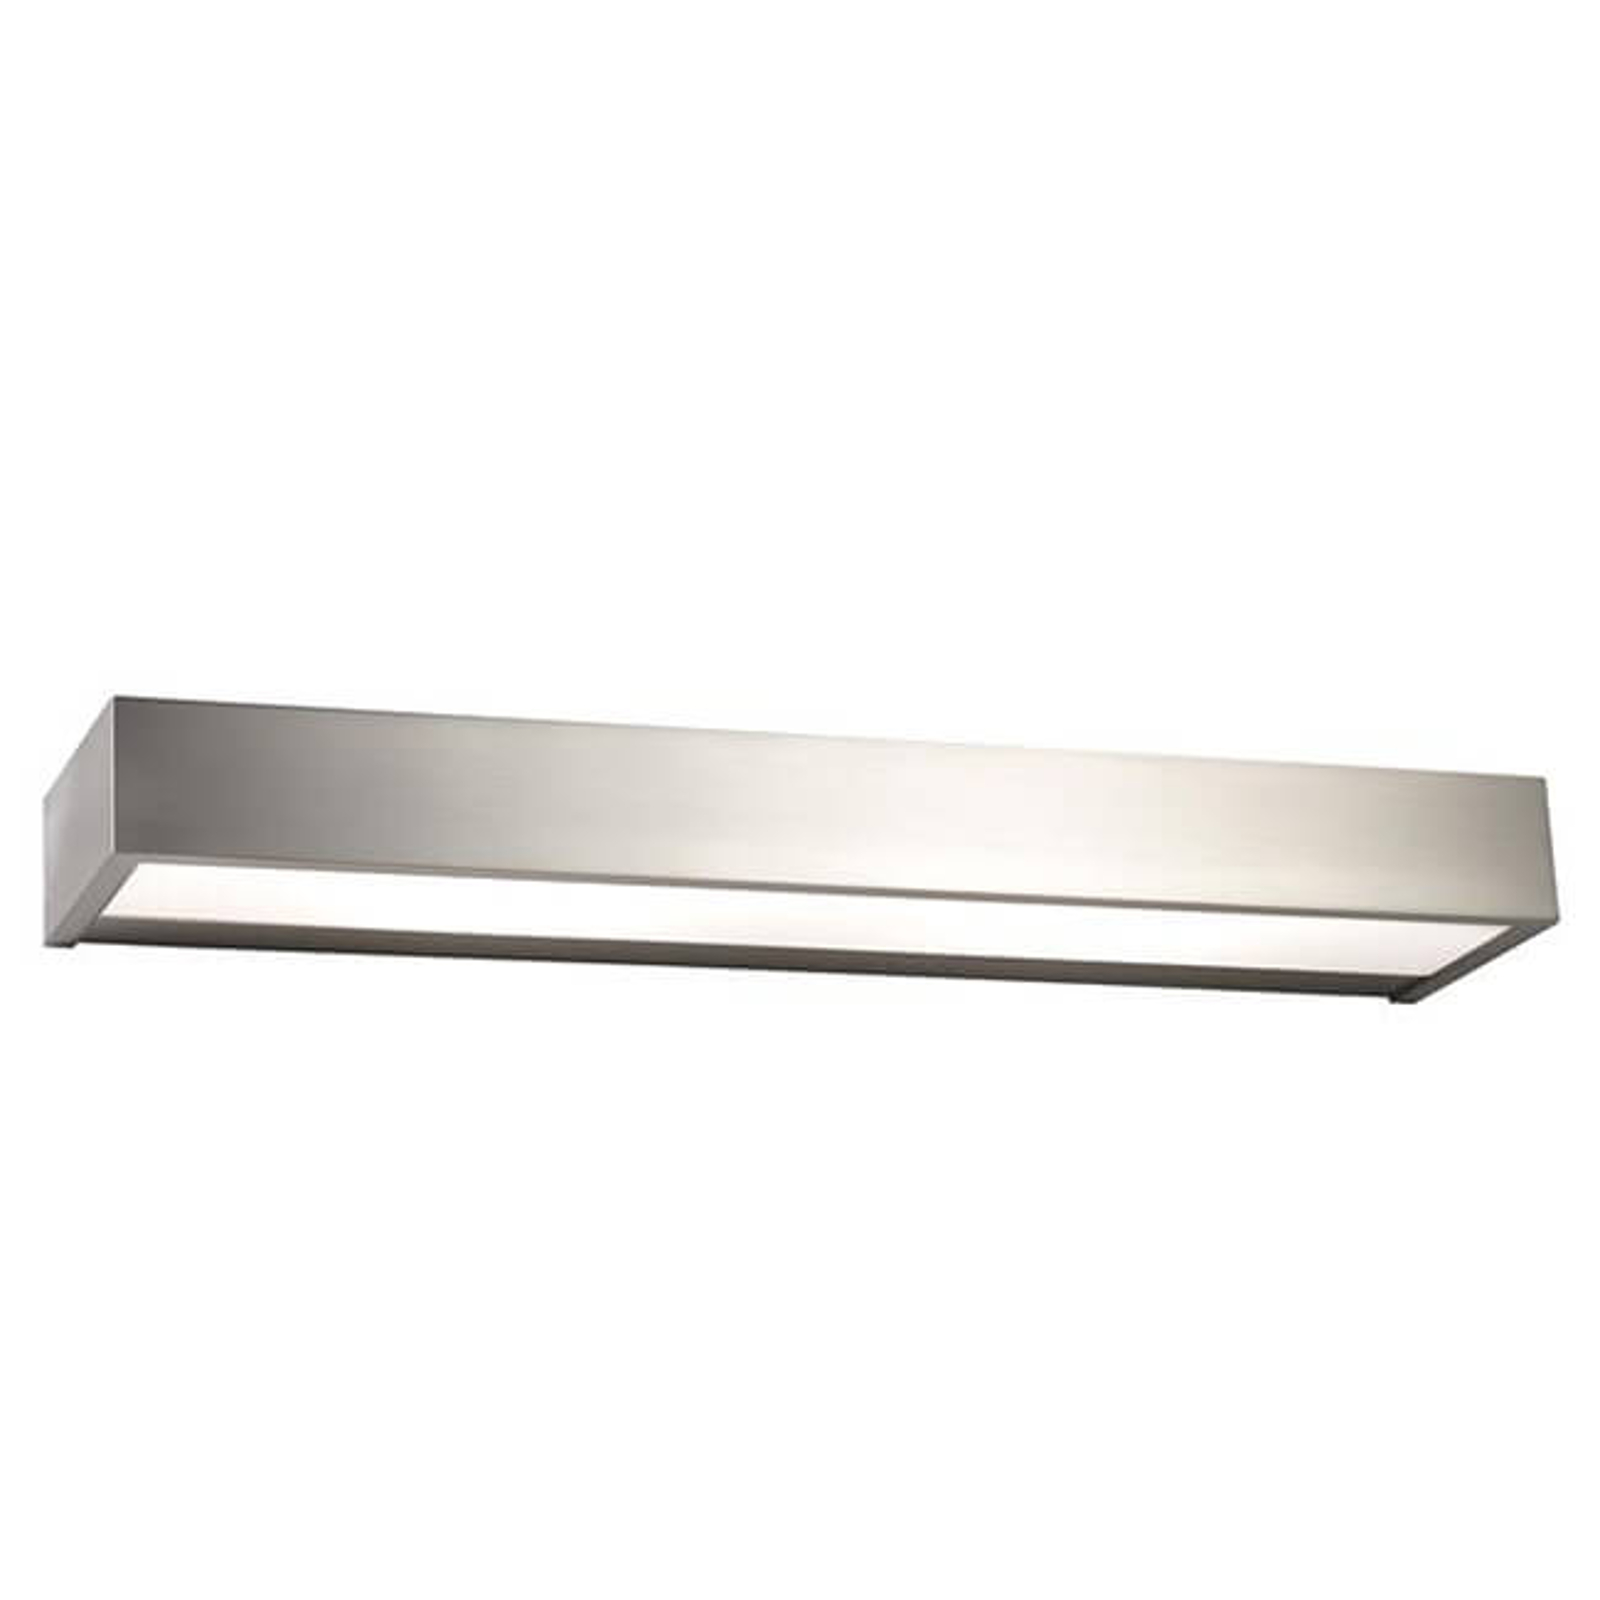 Apolo - applique LED, 60 cm